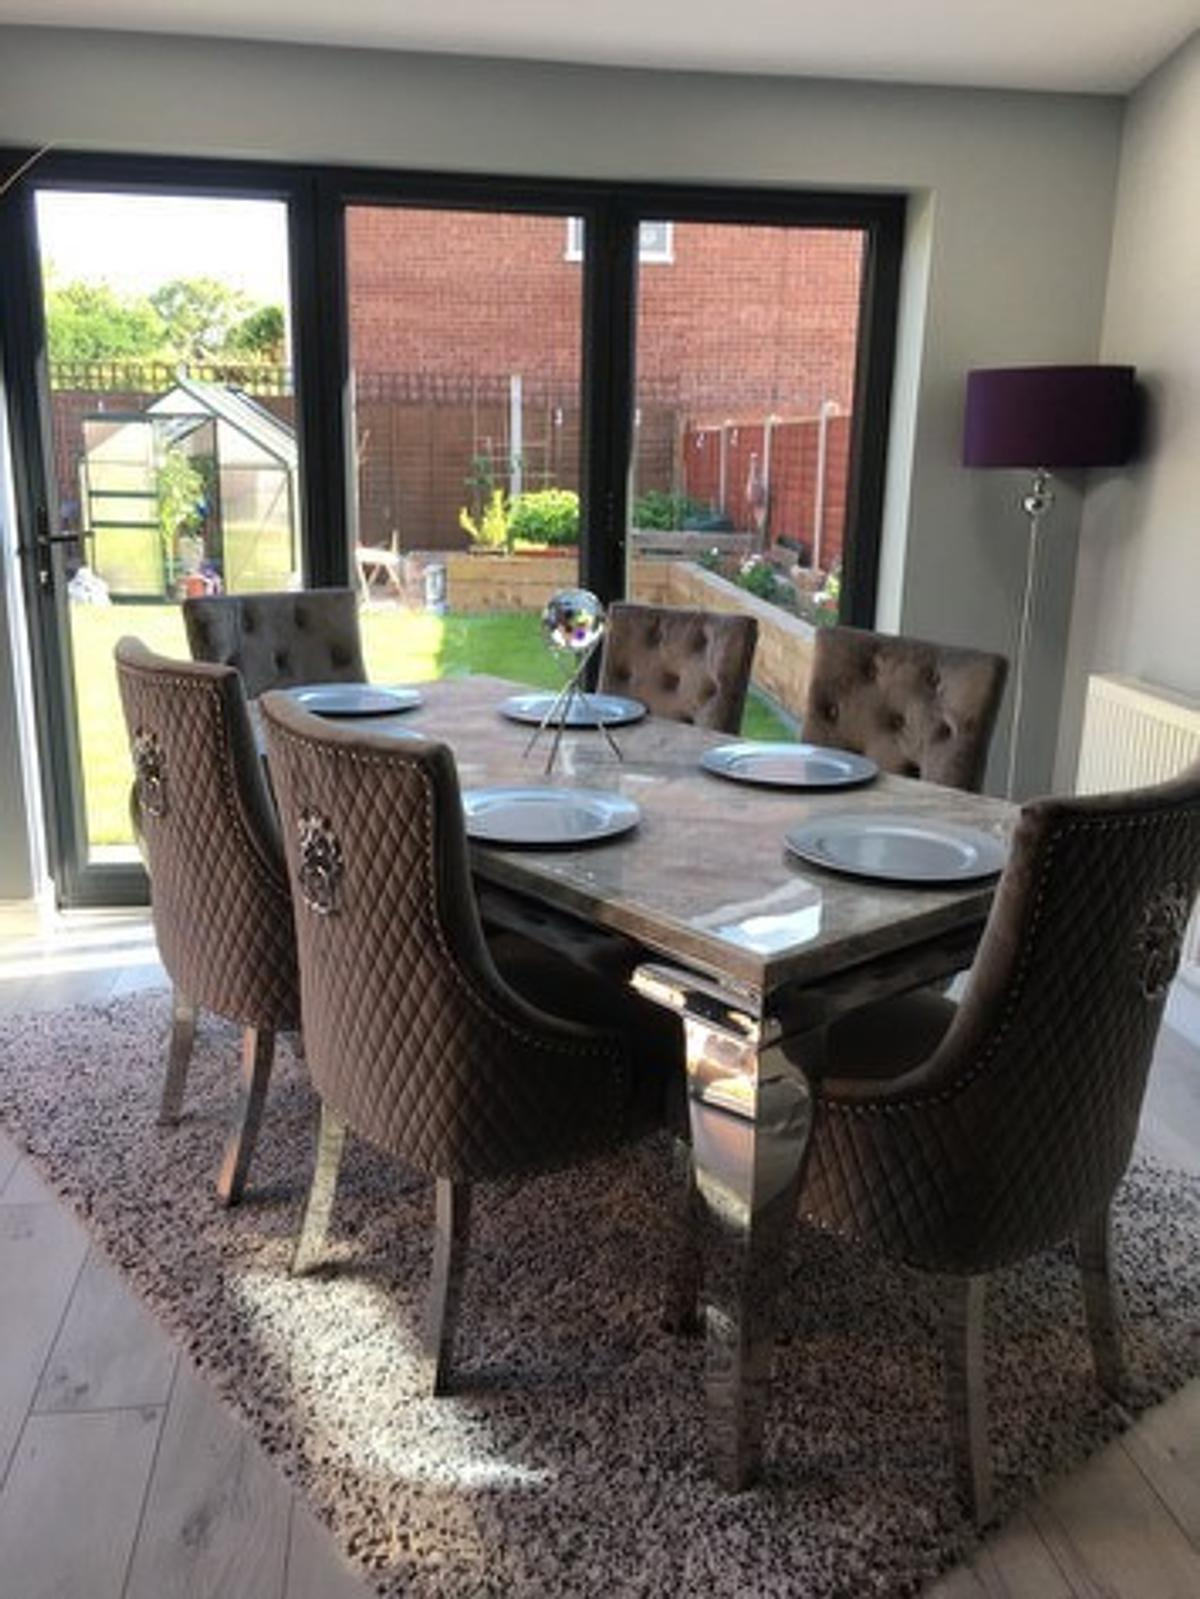 Arianna 6 Seater Dining Set In B24 Birmingham For 1 449 00 For Sale Shpock